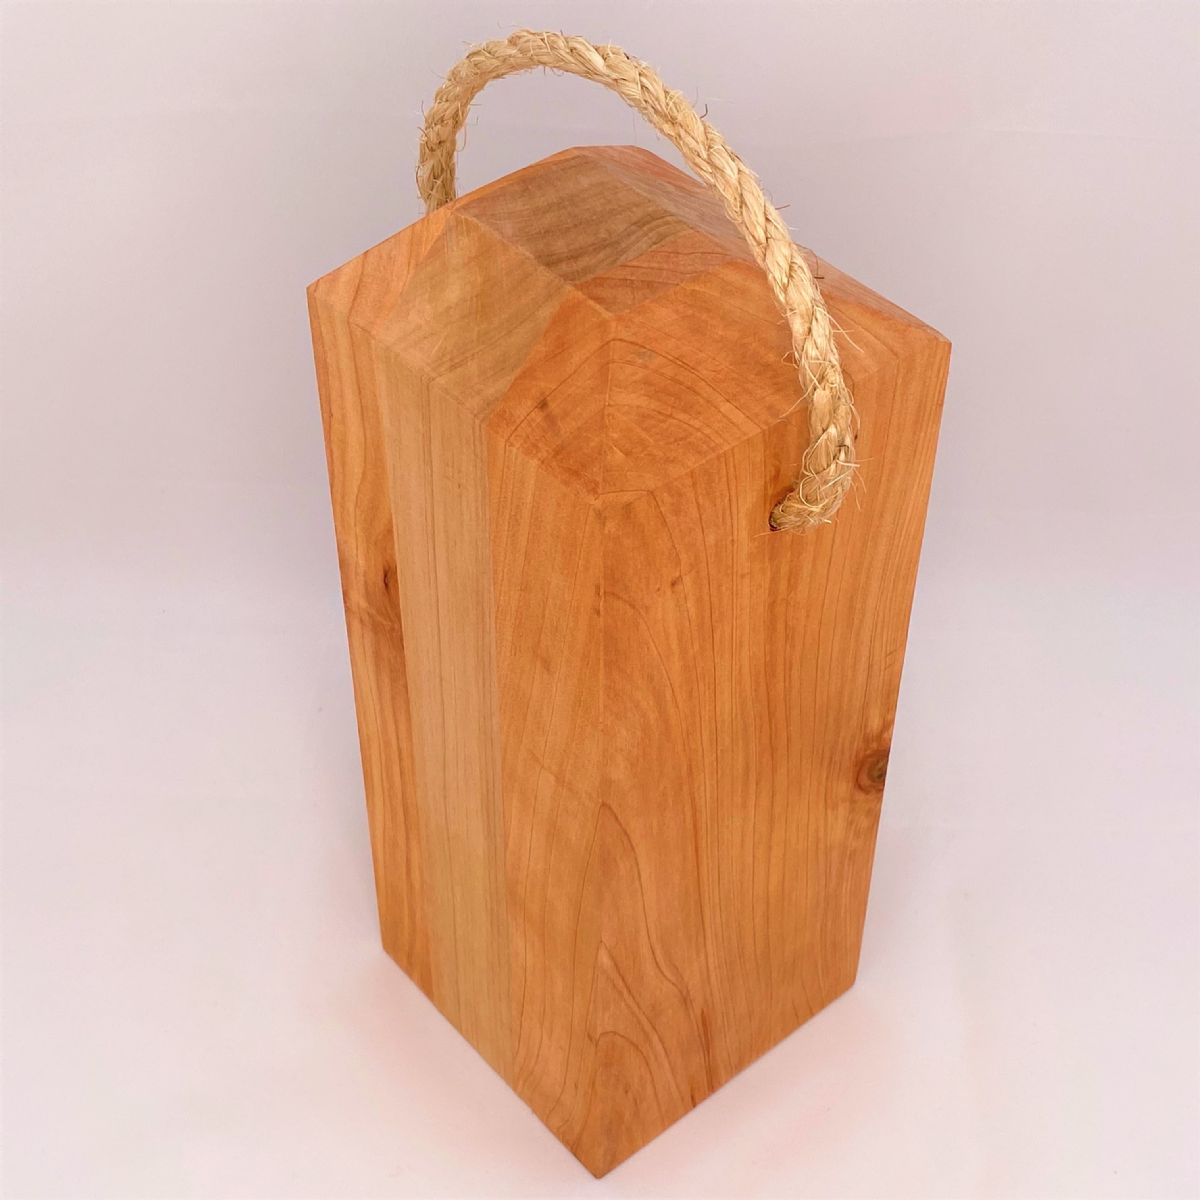 MACROCARPA DOOR STOP 5x5: Small